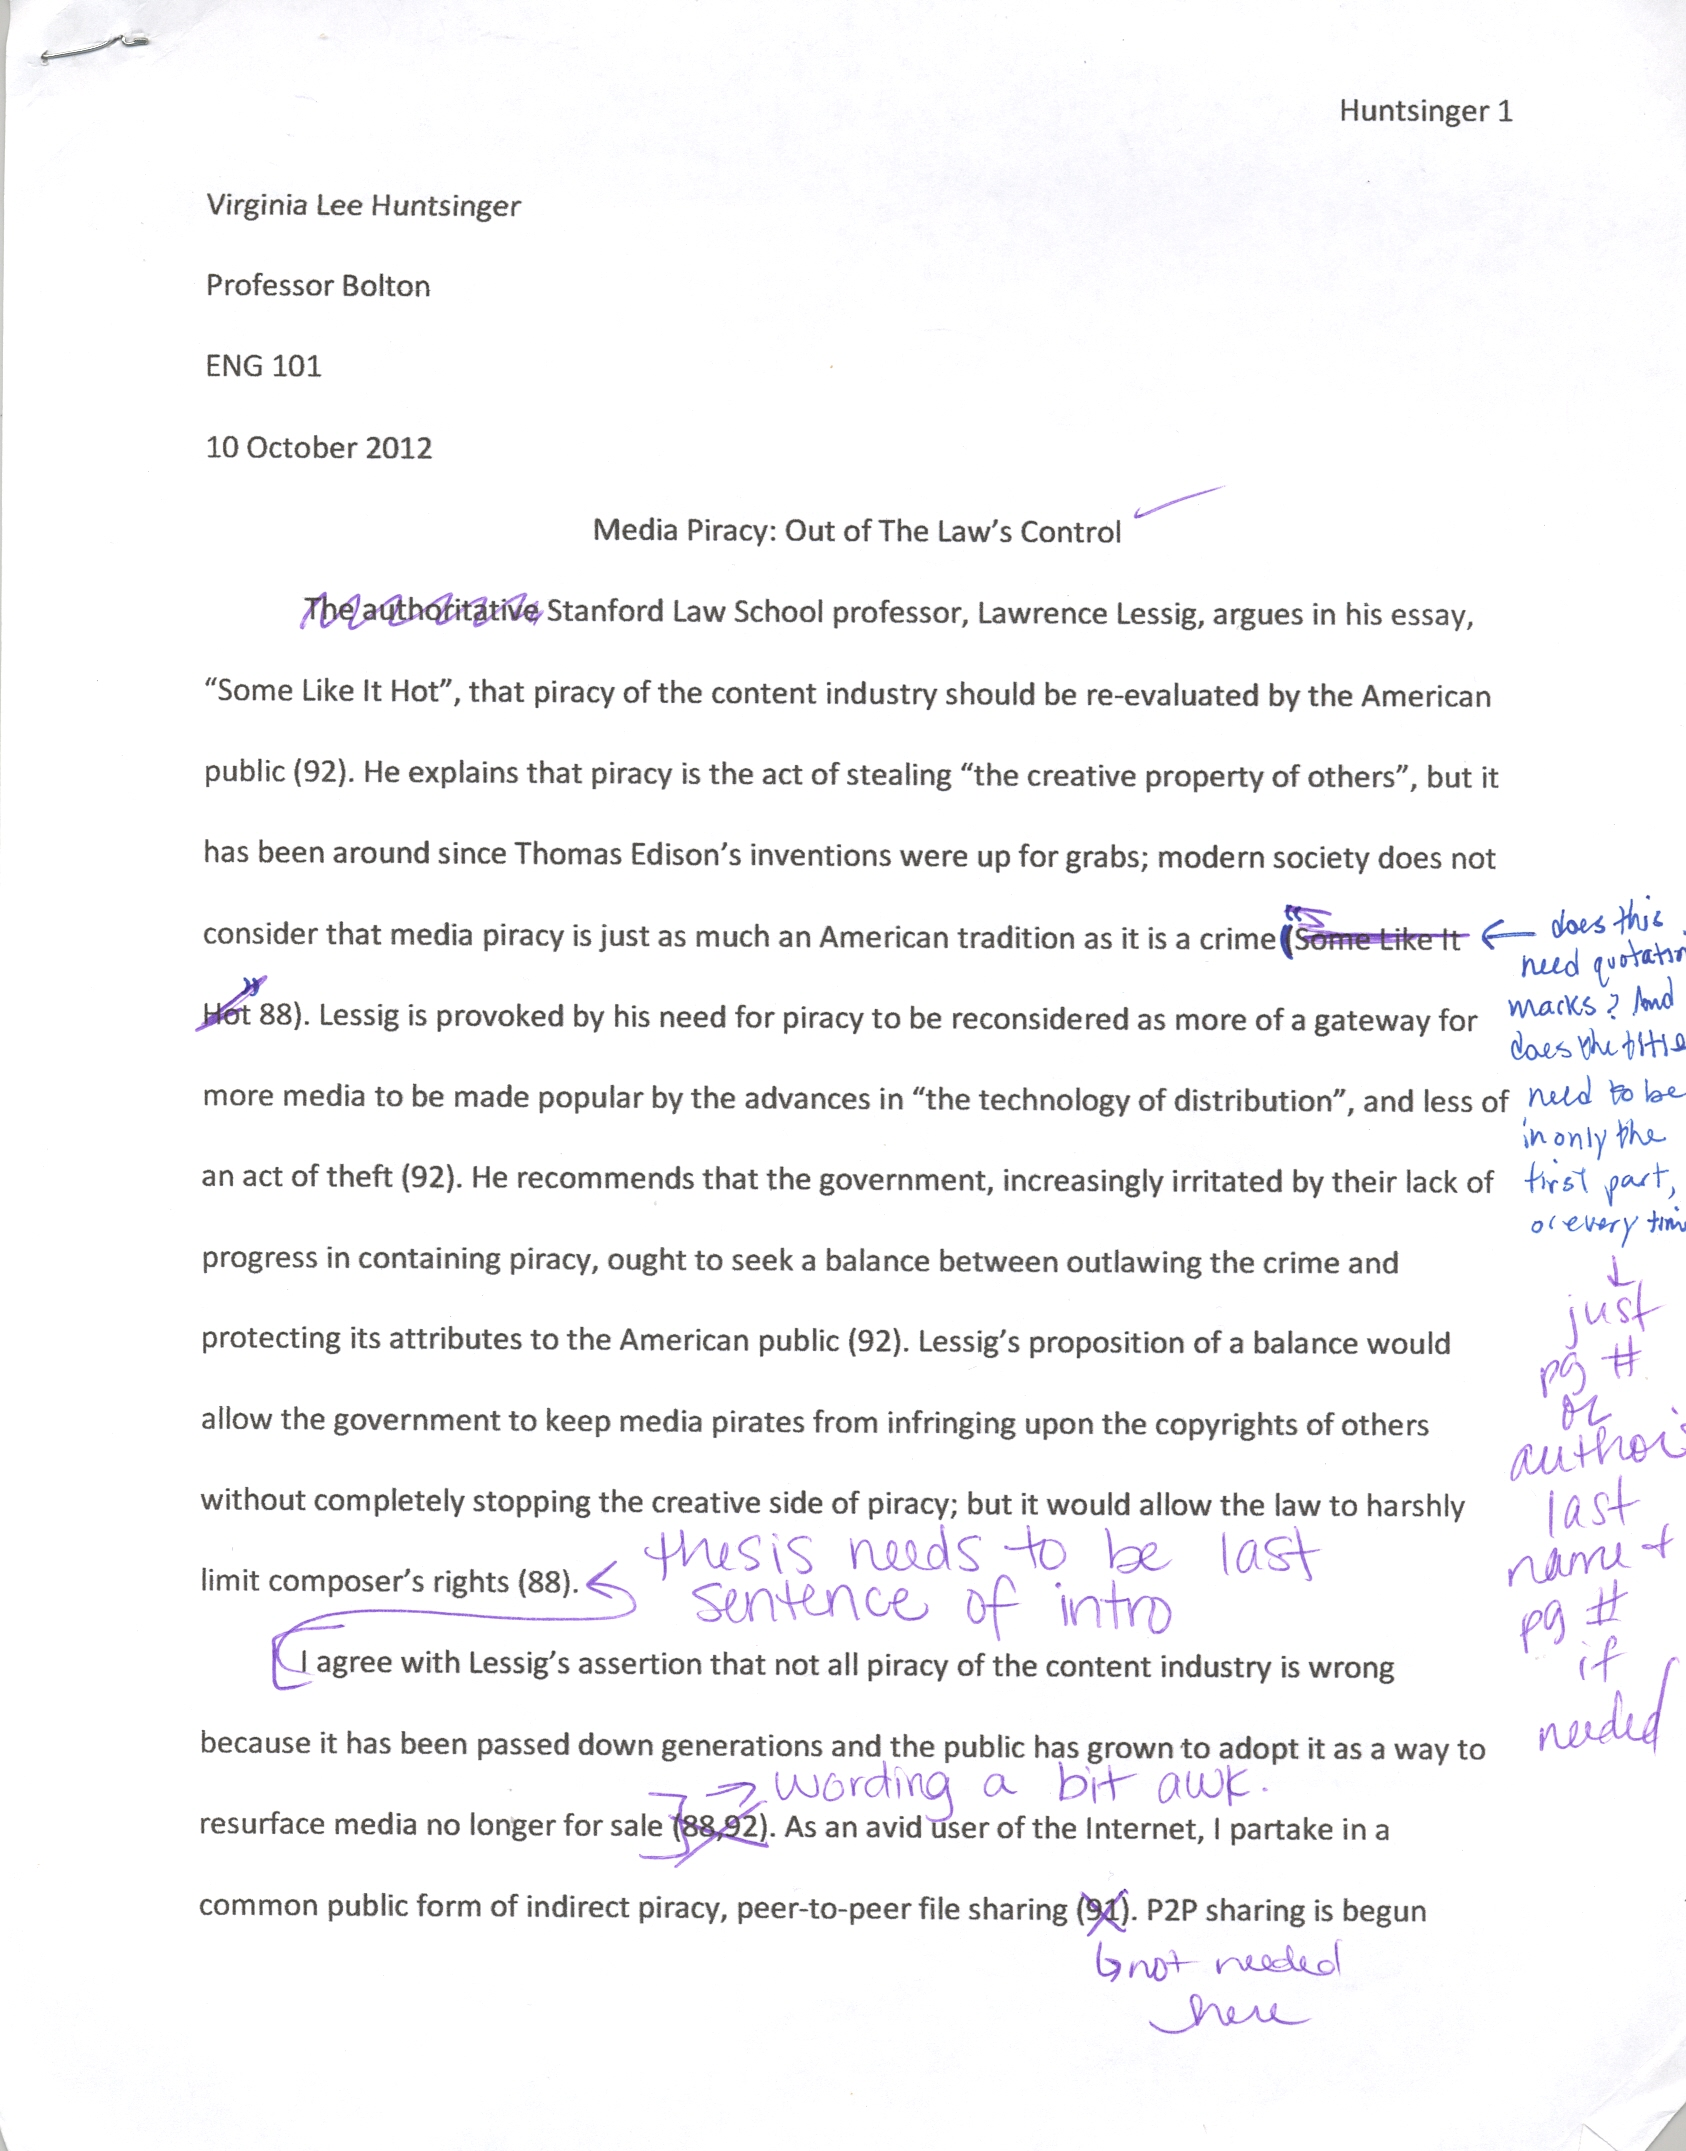 text analysis response english 101 portfolio file